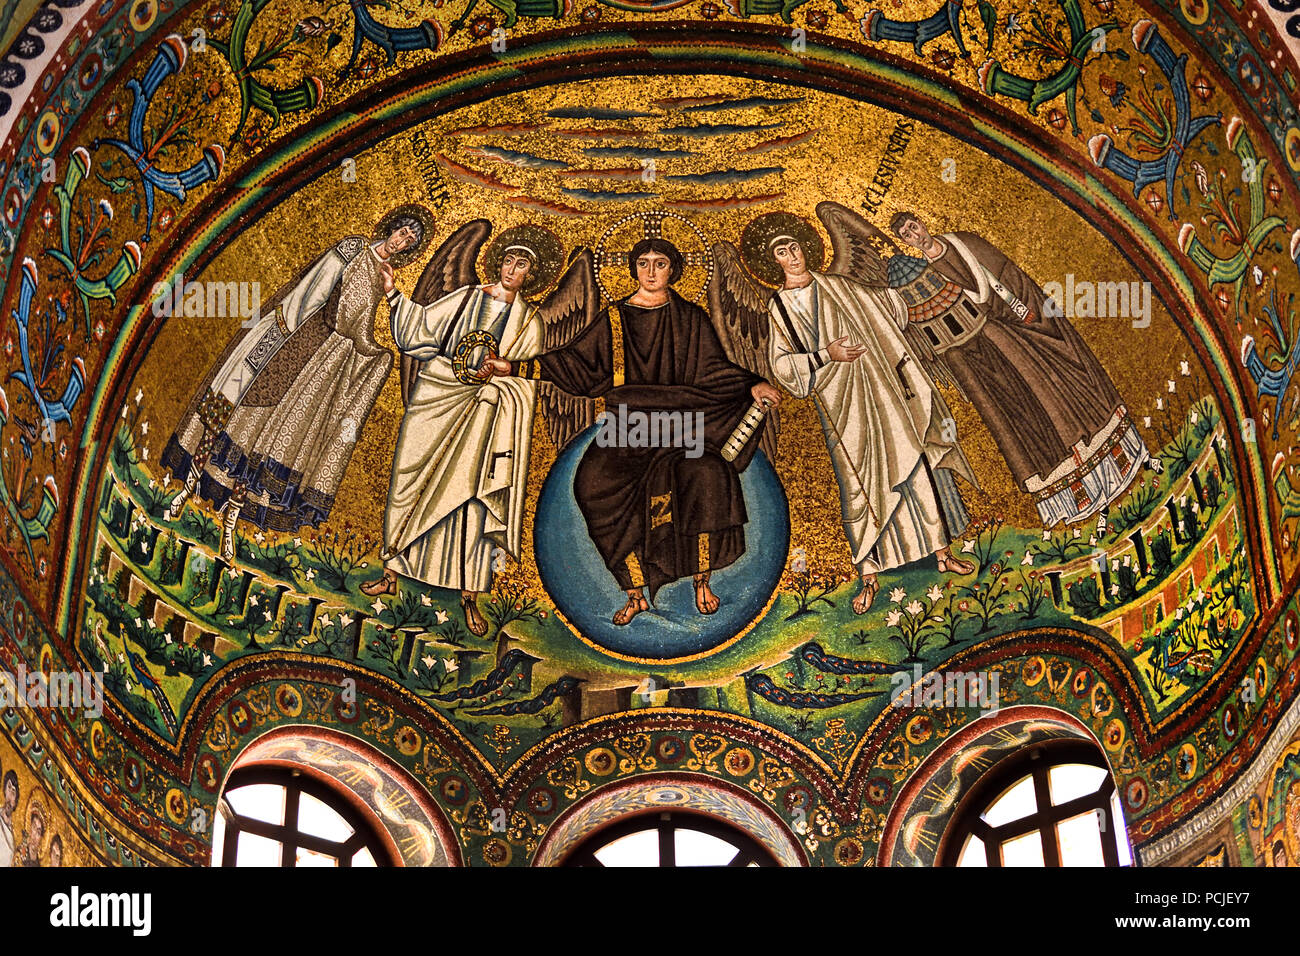 Depicting Christ as creator of the cosmos in Basilica of San Vitale 547 AD 6th Century in Ravenna - Mosaics ( late Roman and Byzantine architecture,) Emilia-Romagna - Northern Italy. ( UNESCO World Heritage site ) - Stock Image